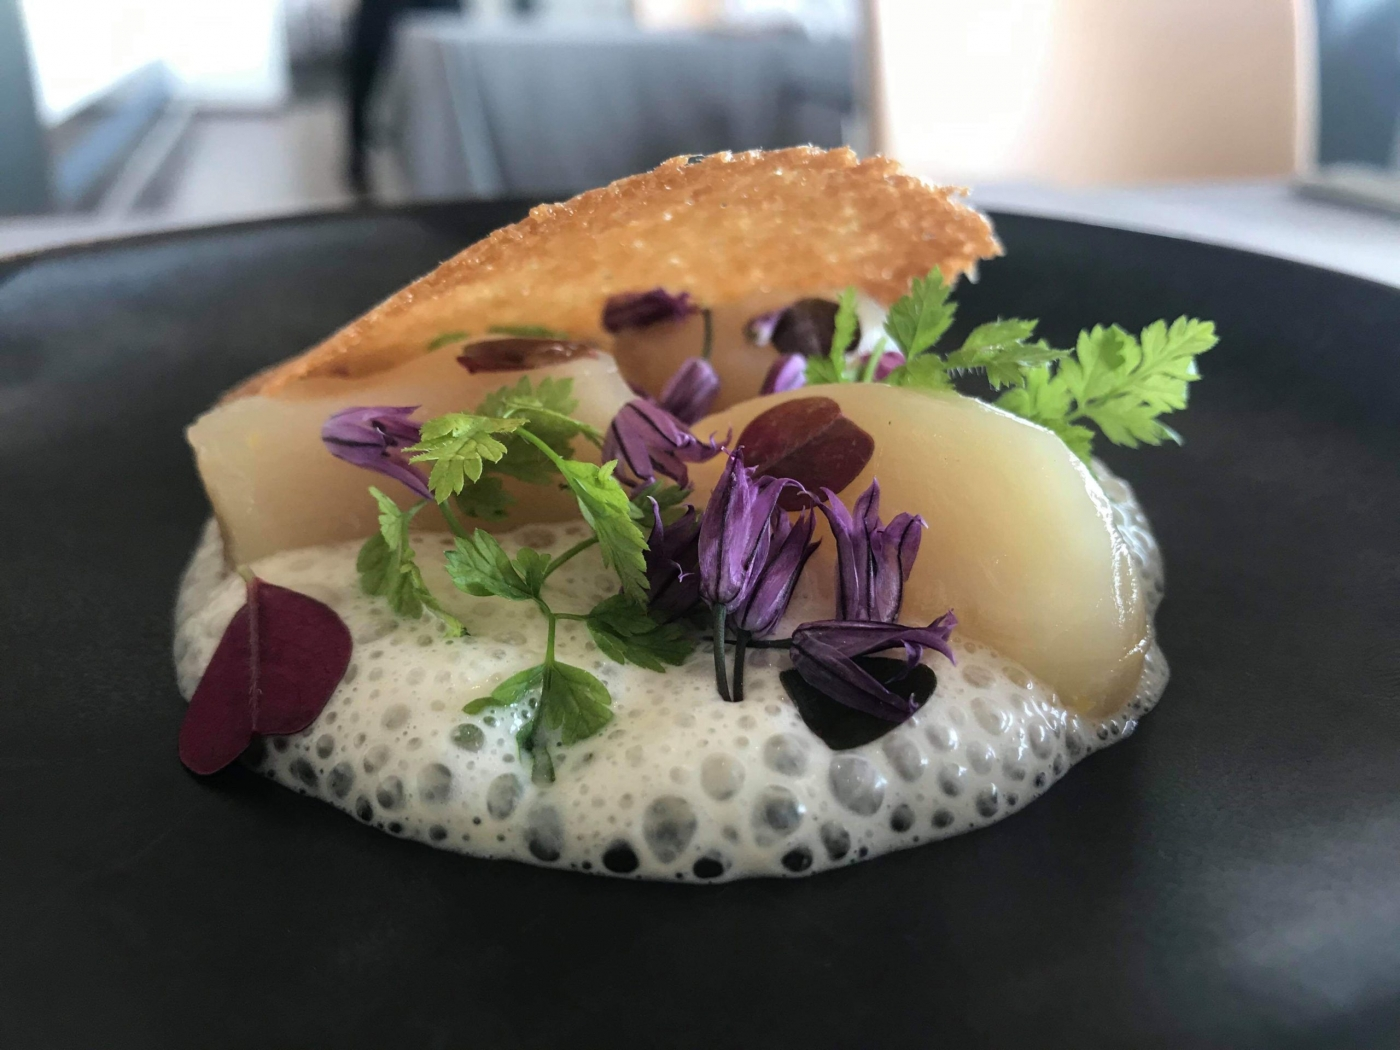 A desert created from local, seasonal ingredients. Photo by Brasserie Ulo - Hotel Arctic